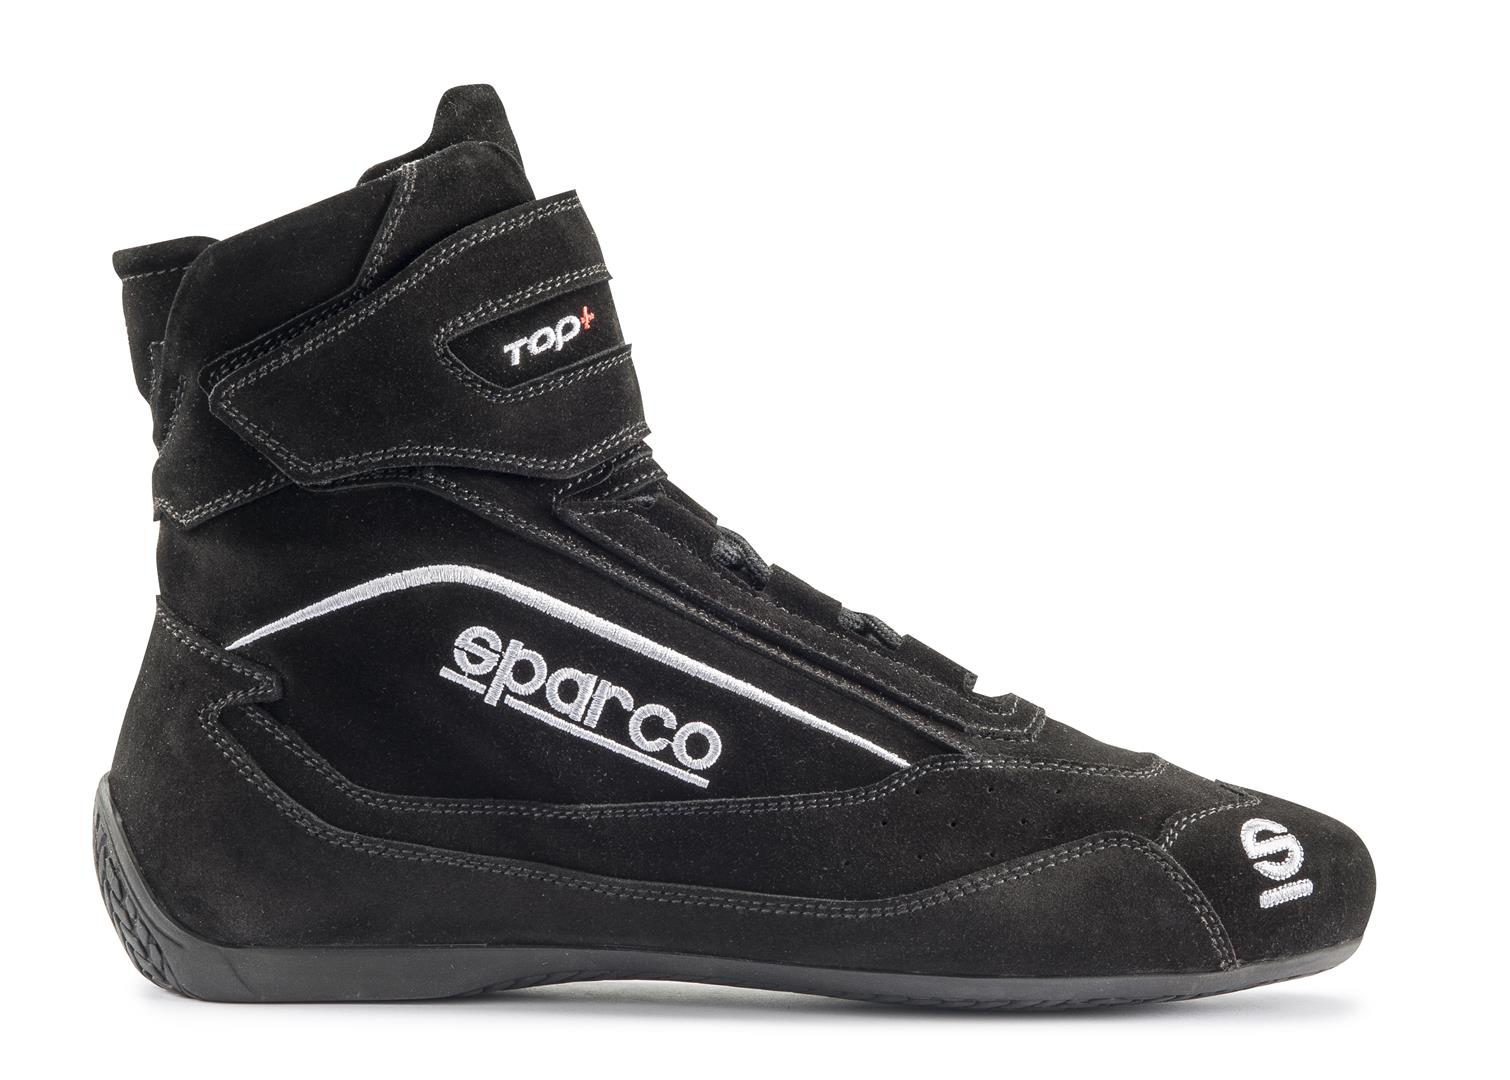 Sparco Black Top+ SH-5 Driving Shoes EU 44 | US 10.5 - 00121044NR